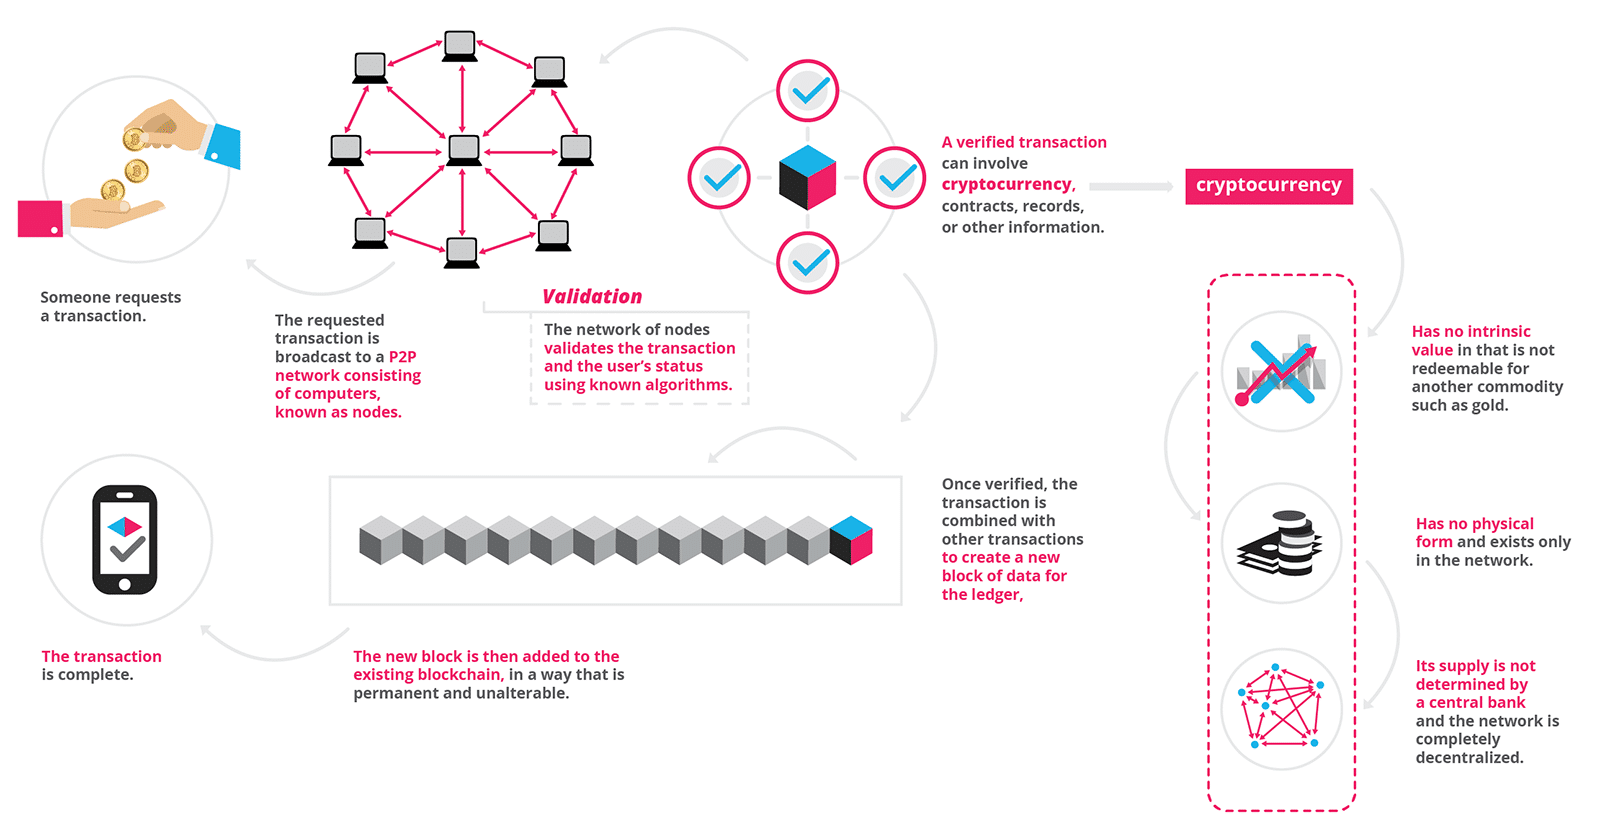 How blockchain technology works. Image via https://blockgeeks.com/guides/what-is-blockchain-technology/